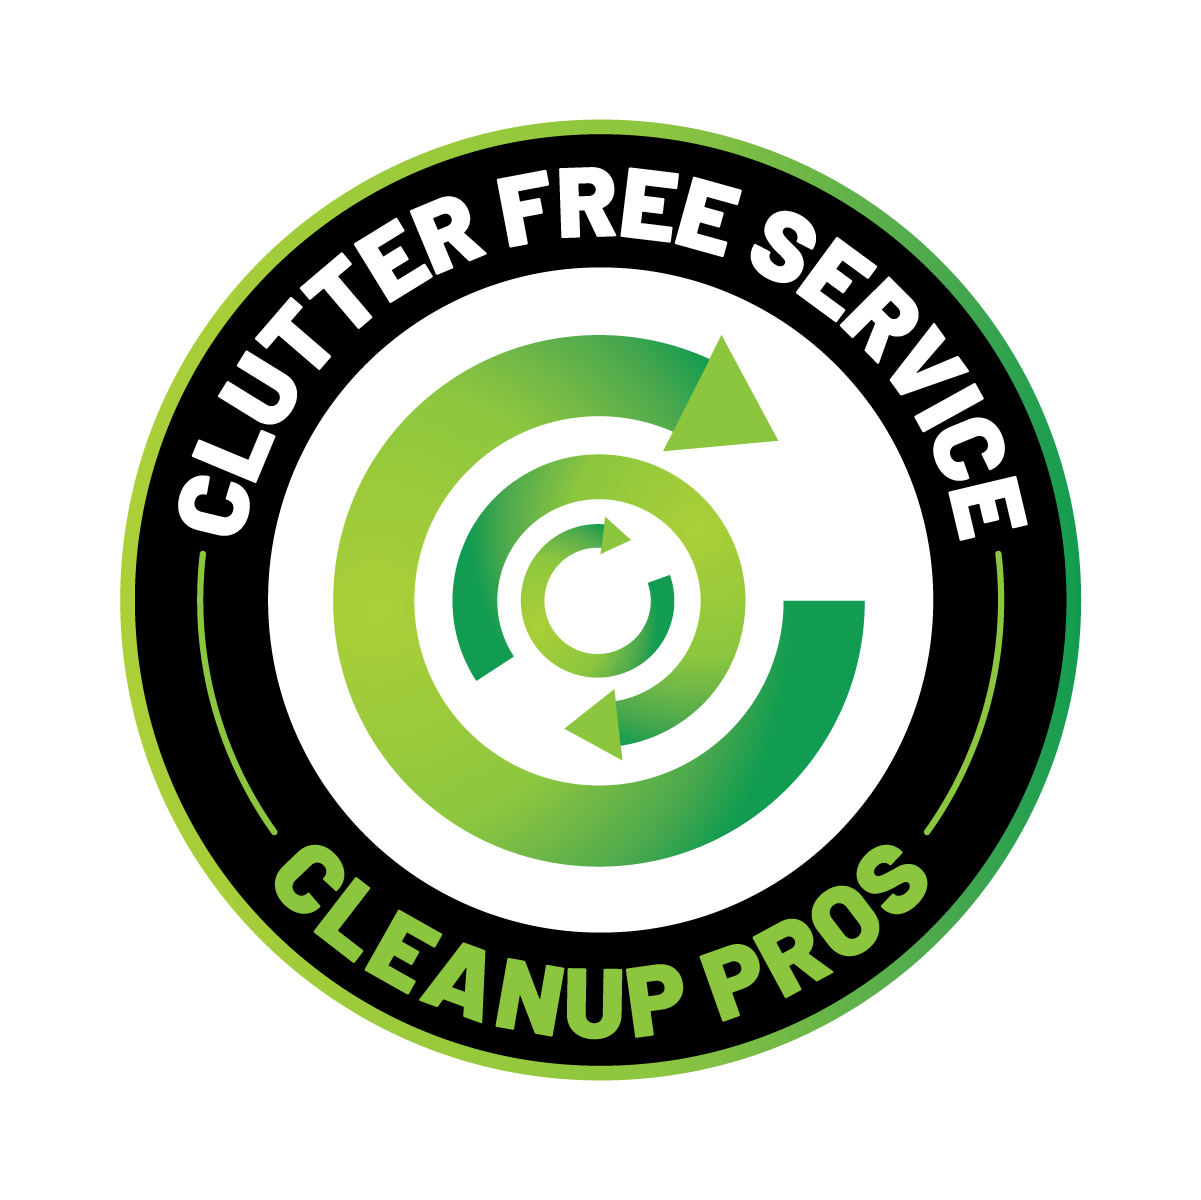 Clutter Free Junk Removal Service & Cleanup Pros logo